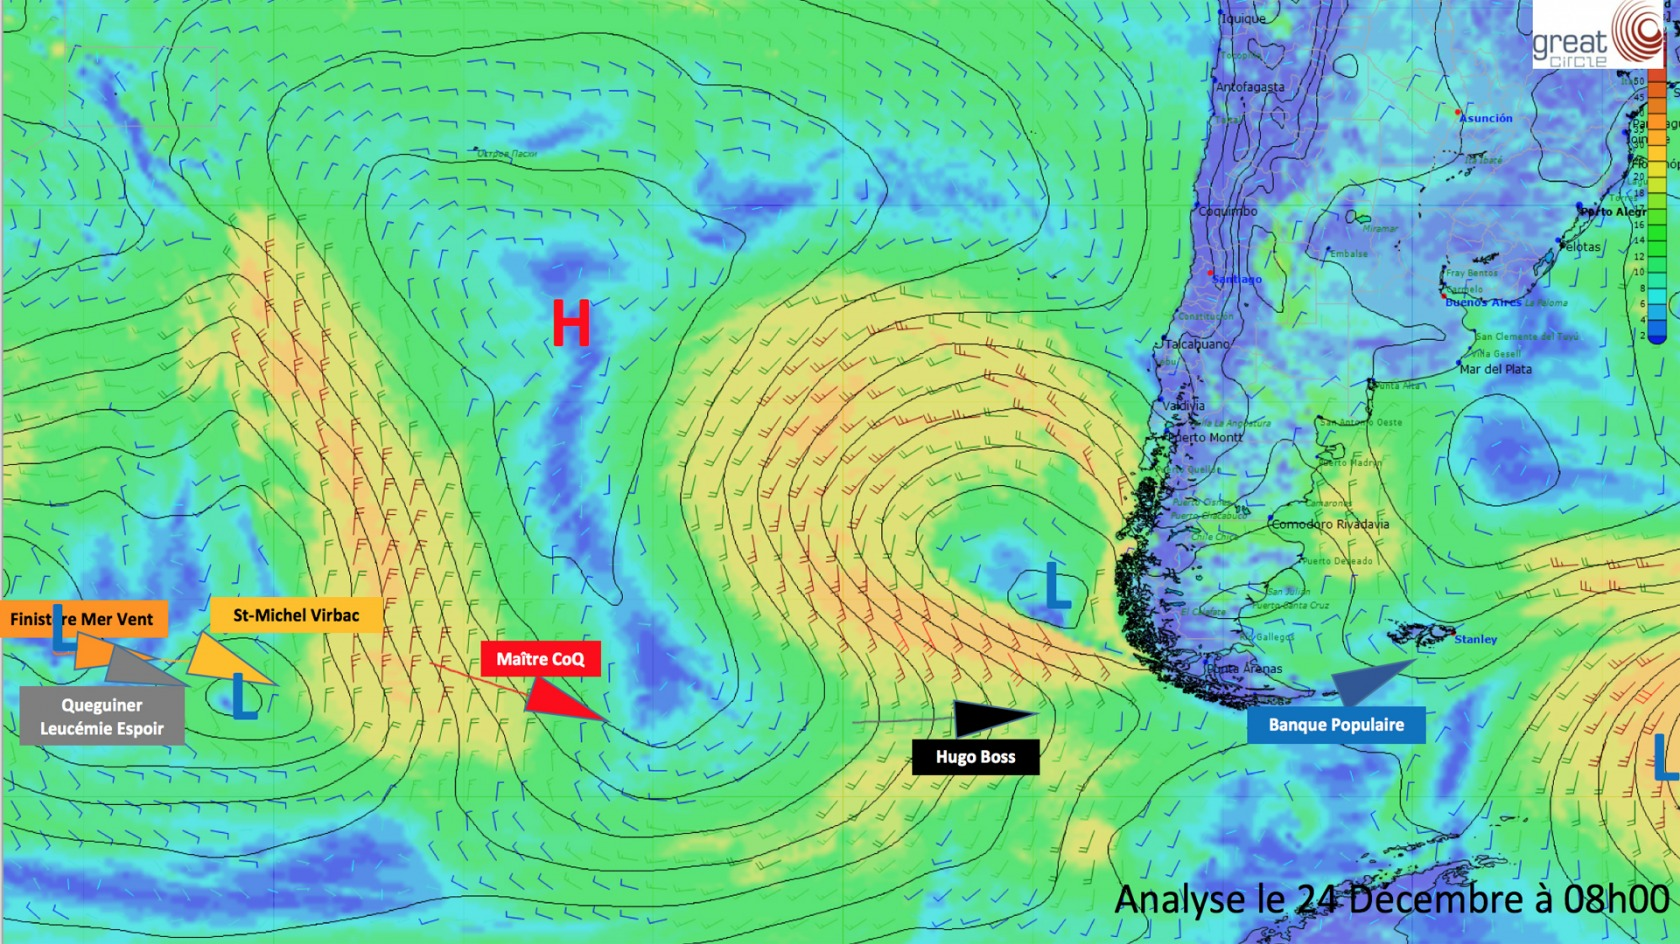 Weather Analysis December 24th 2016 - Leaders